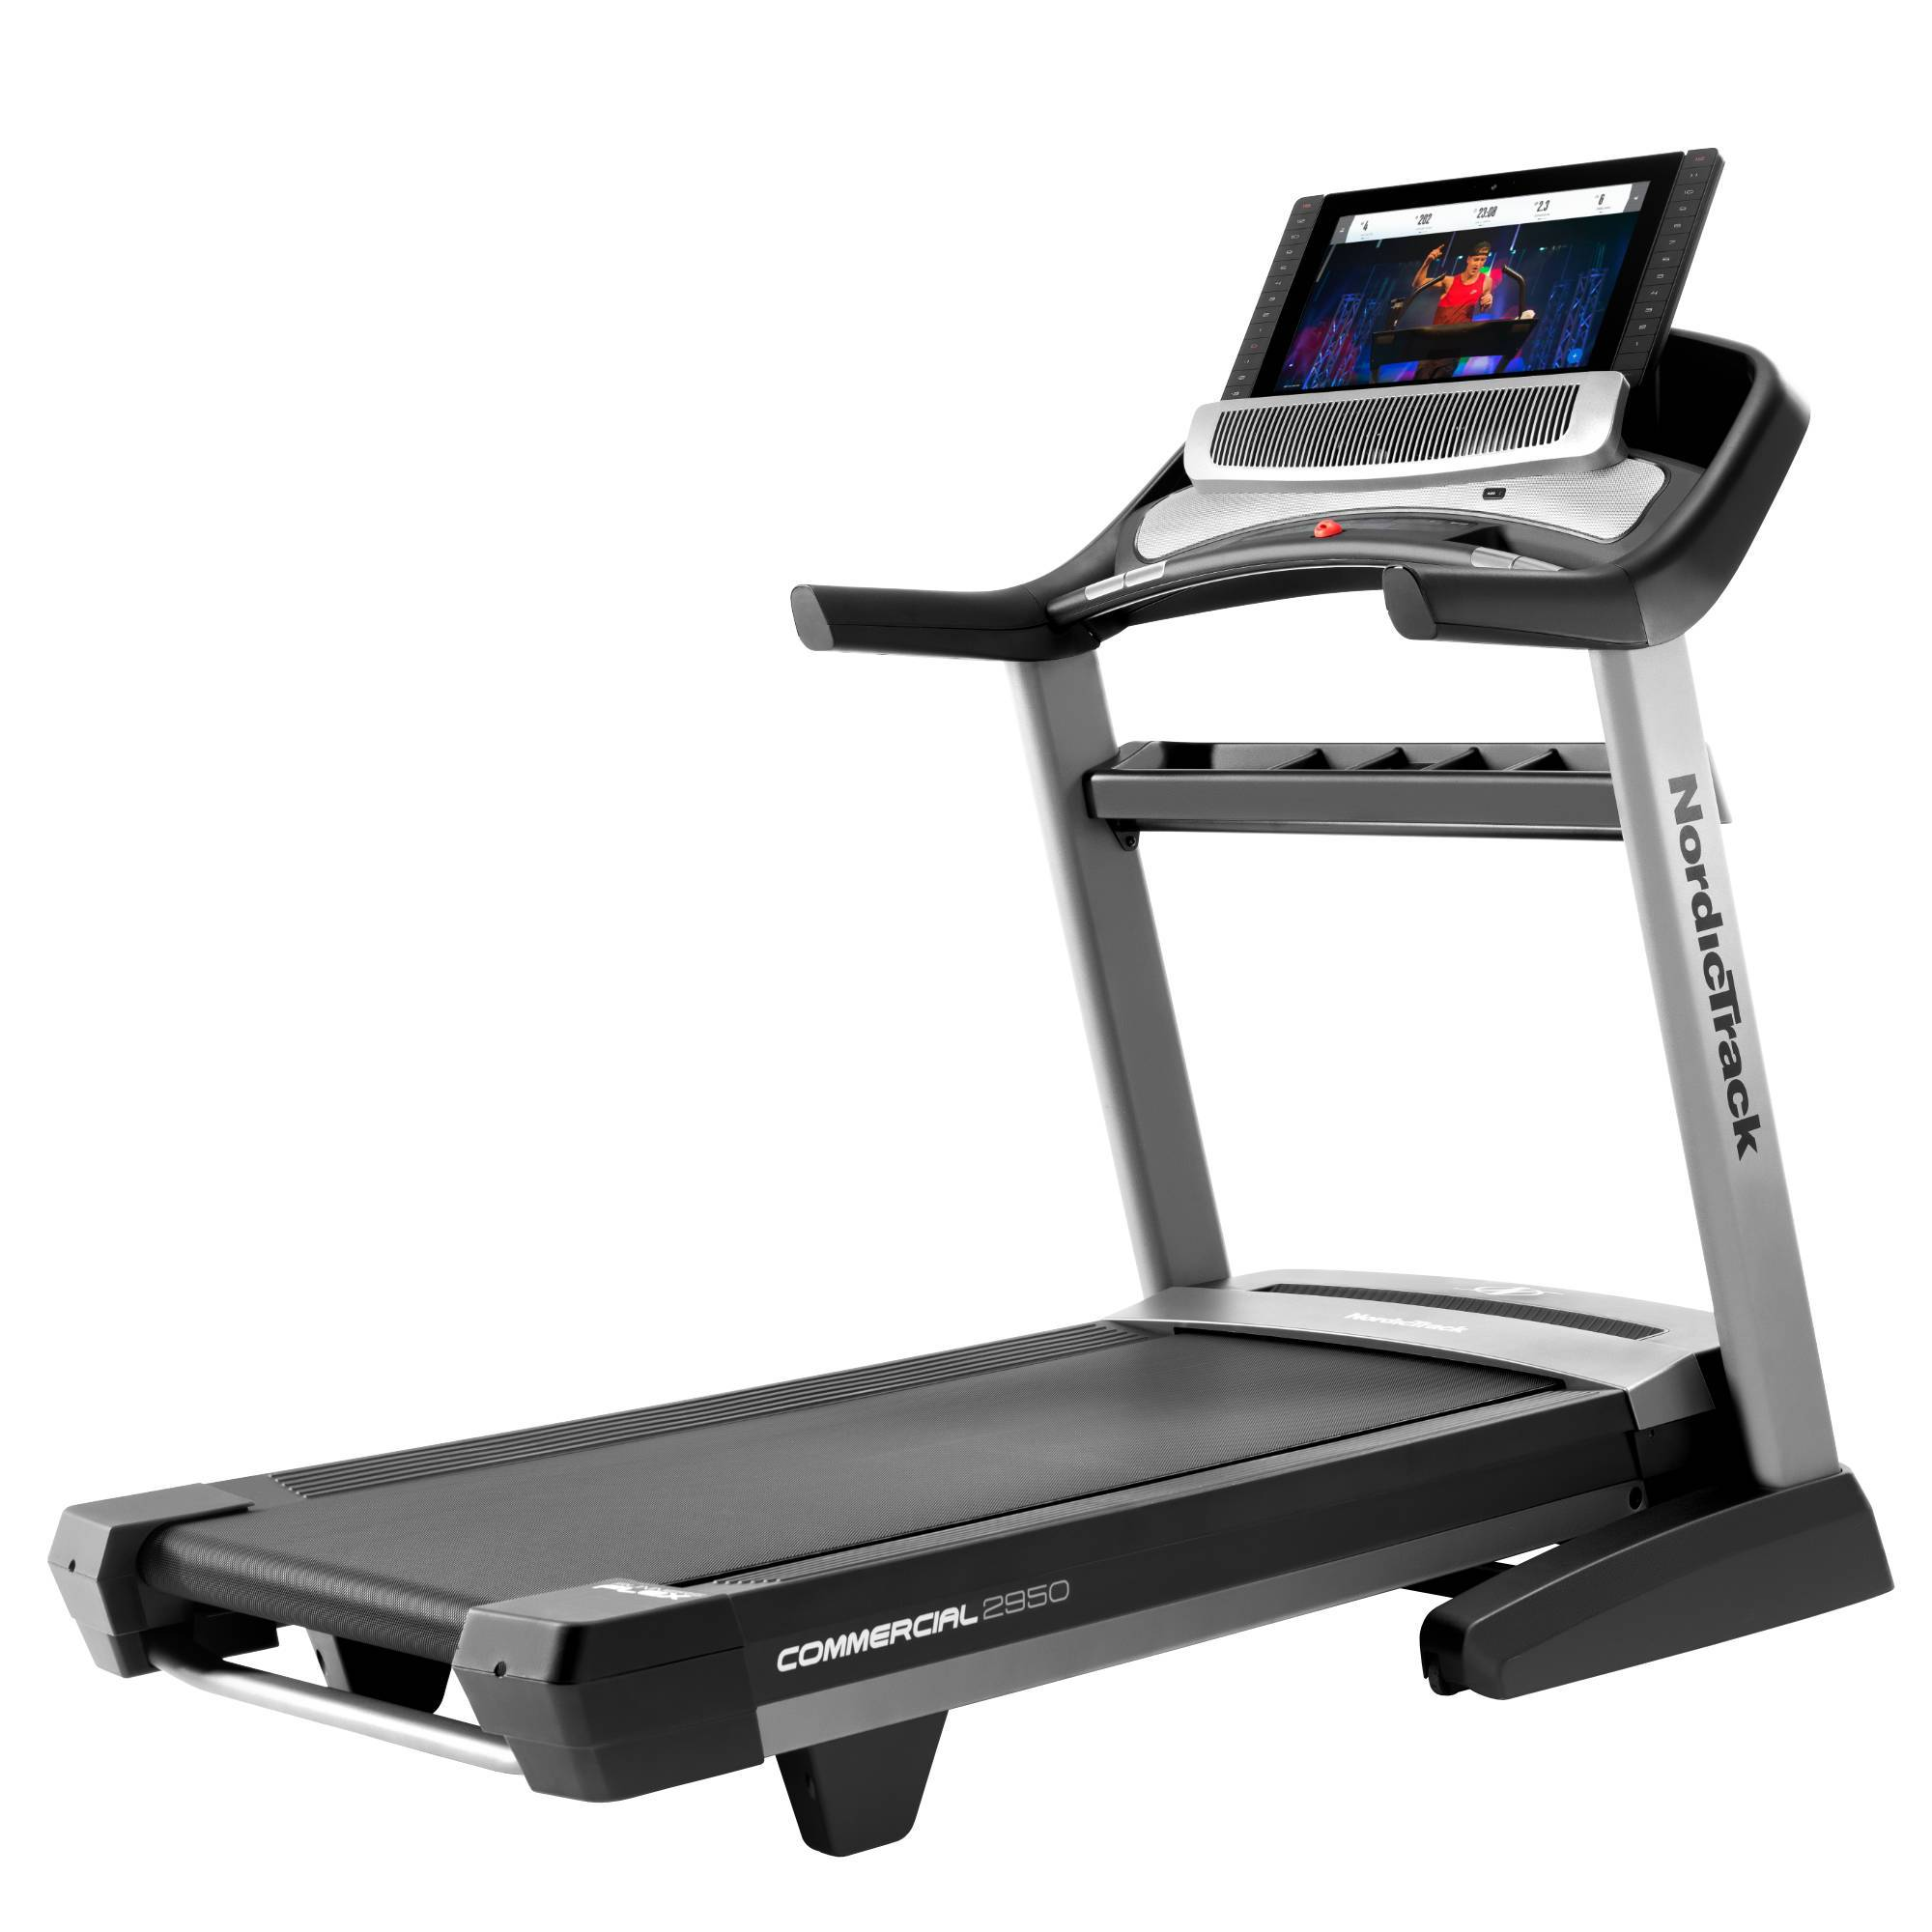 Image of NordicTrack Commercial 2950 Treadmill